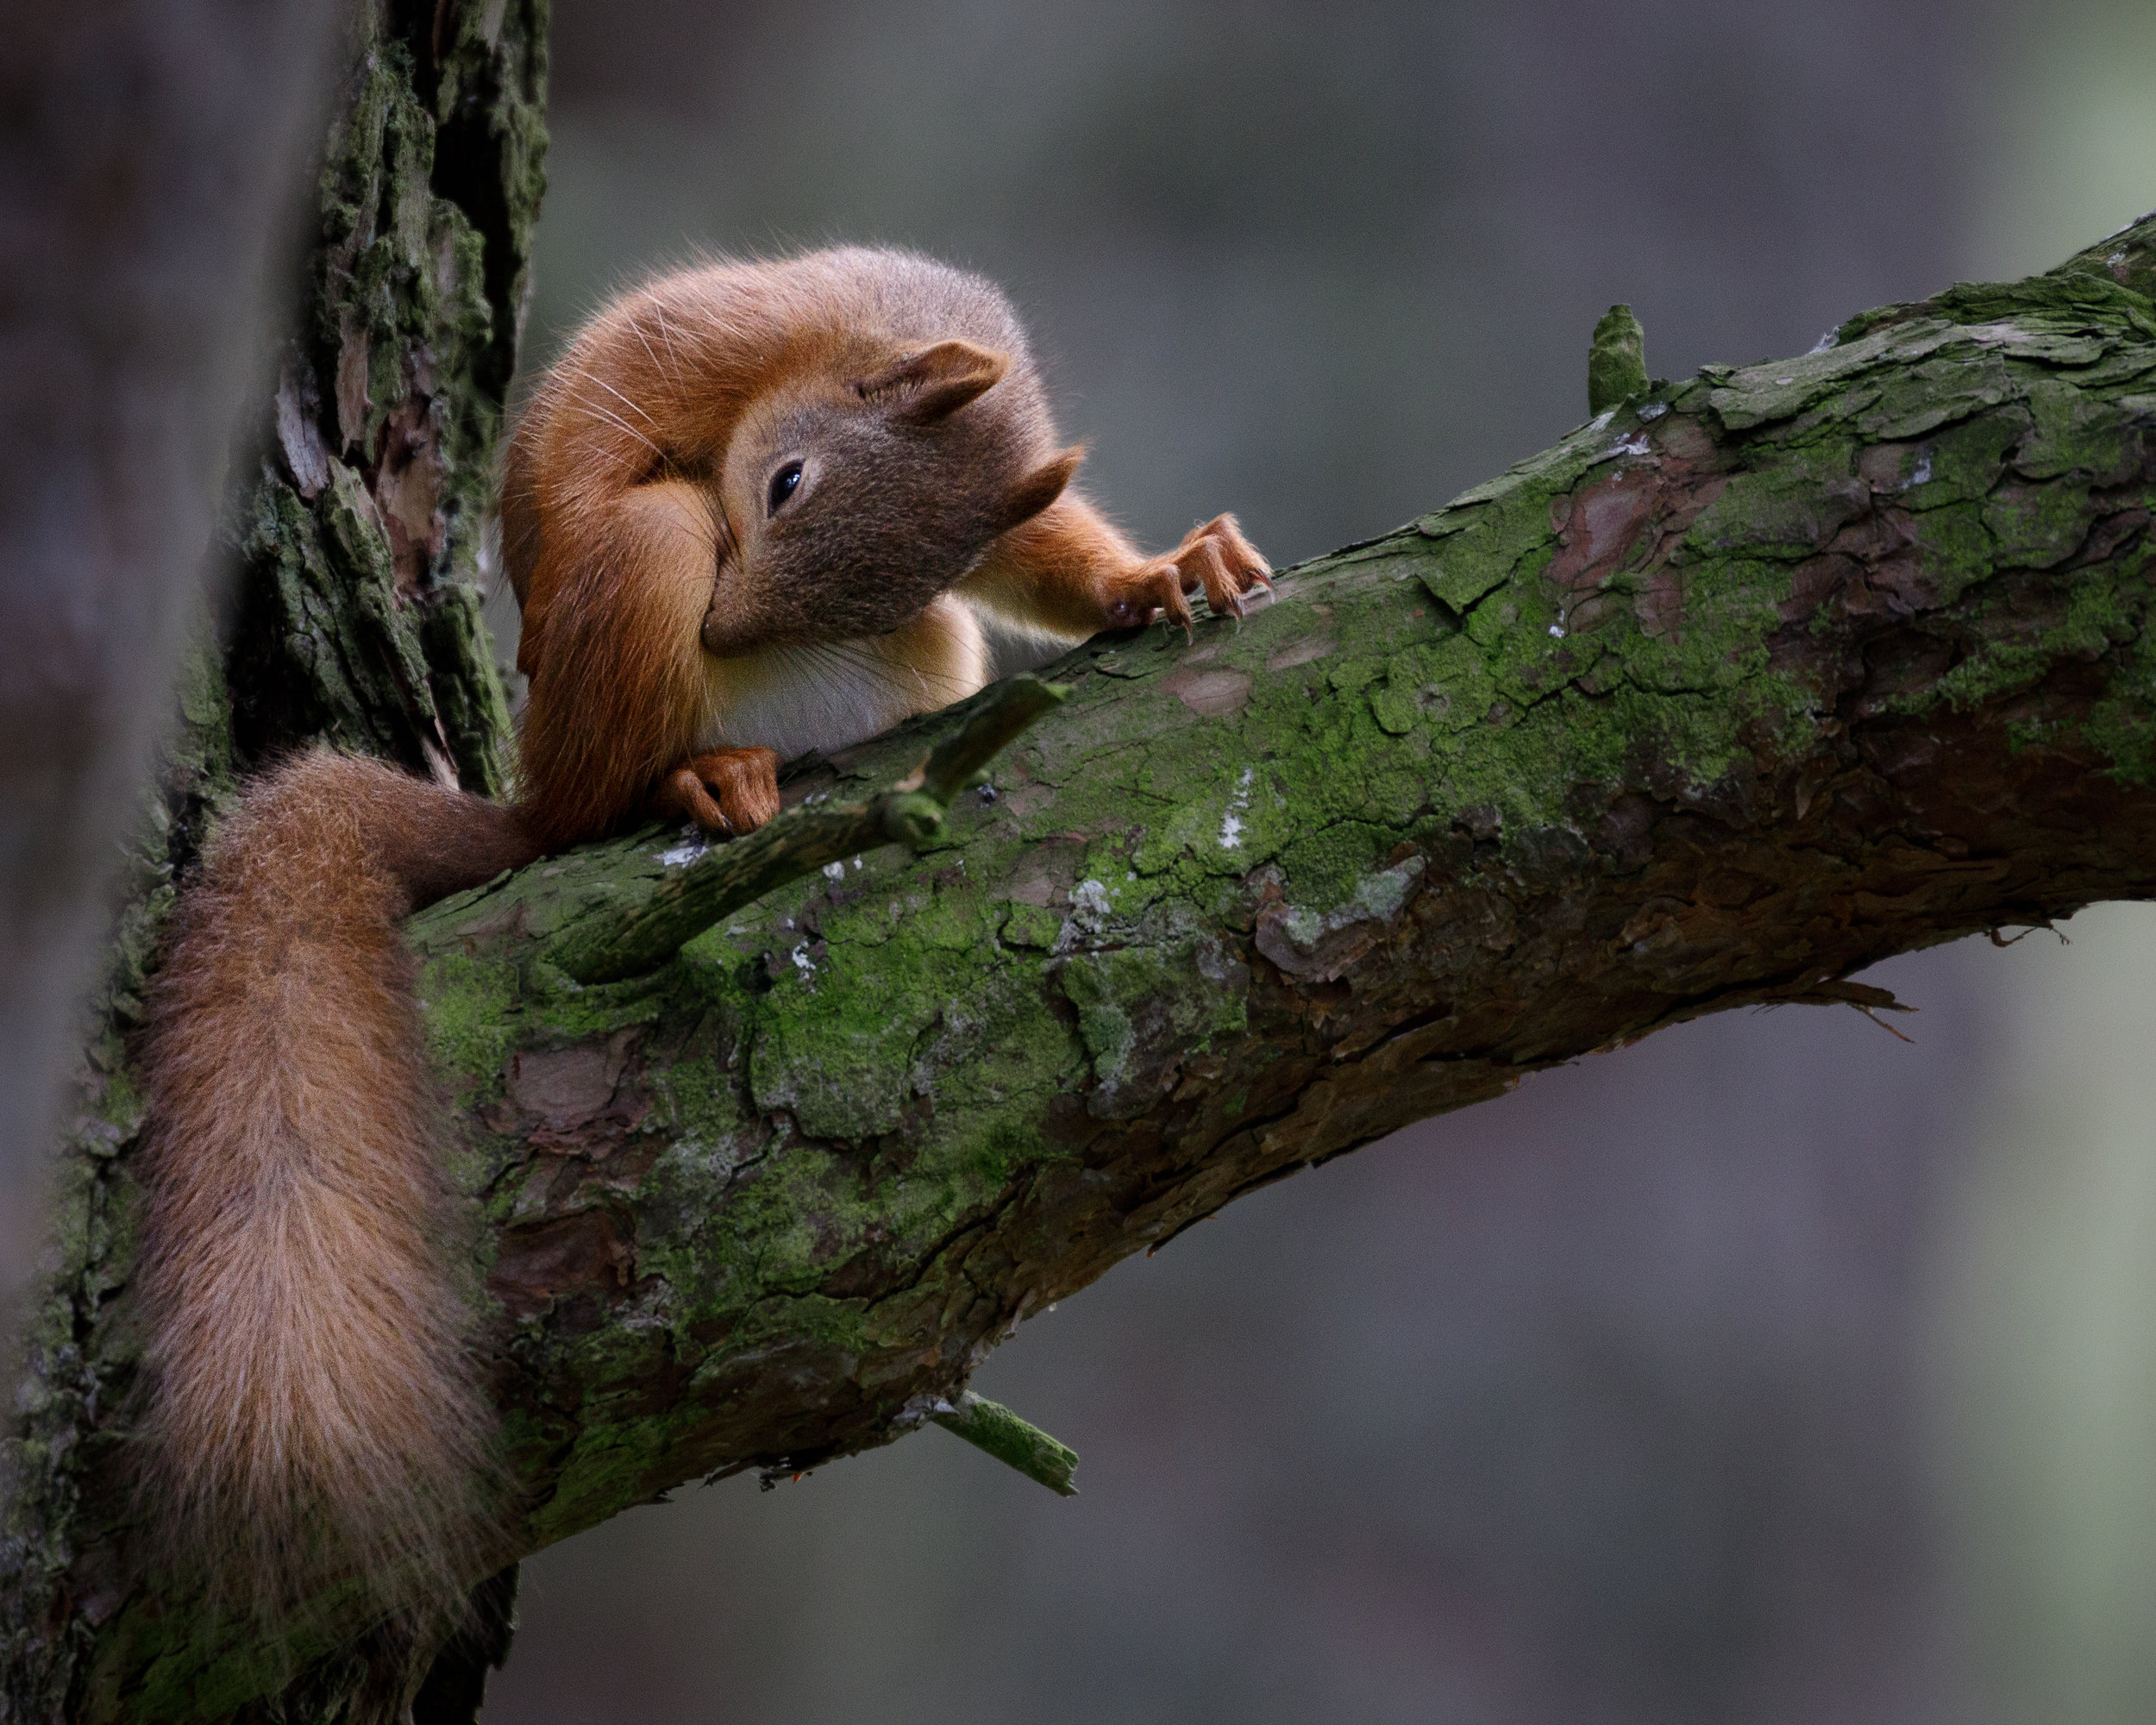 Eurasian red squirrel (Sciurus vulgaris) nibbling an itch in the bend of a tree at the Loch Garten Osprey Centre in Cairngorms National Park, Scotland.